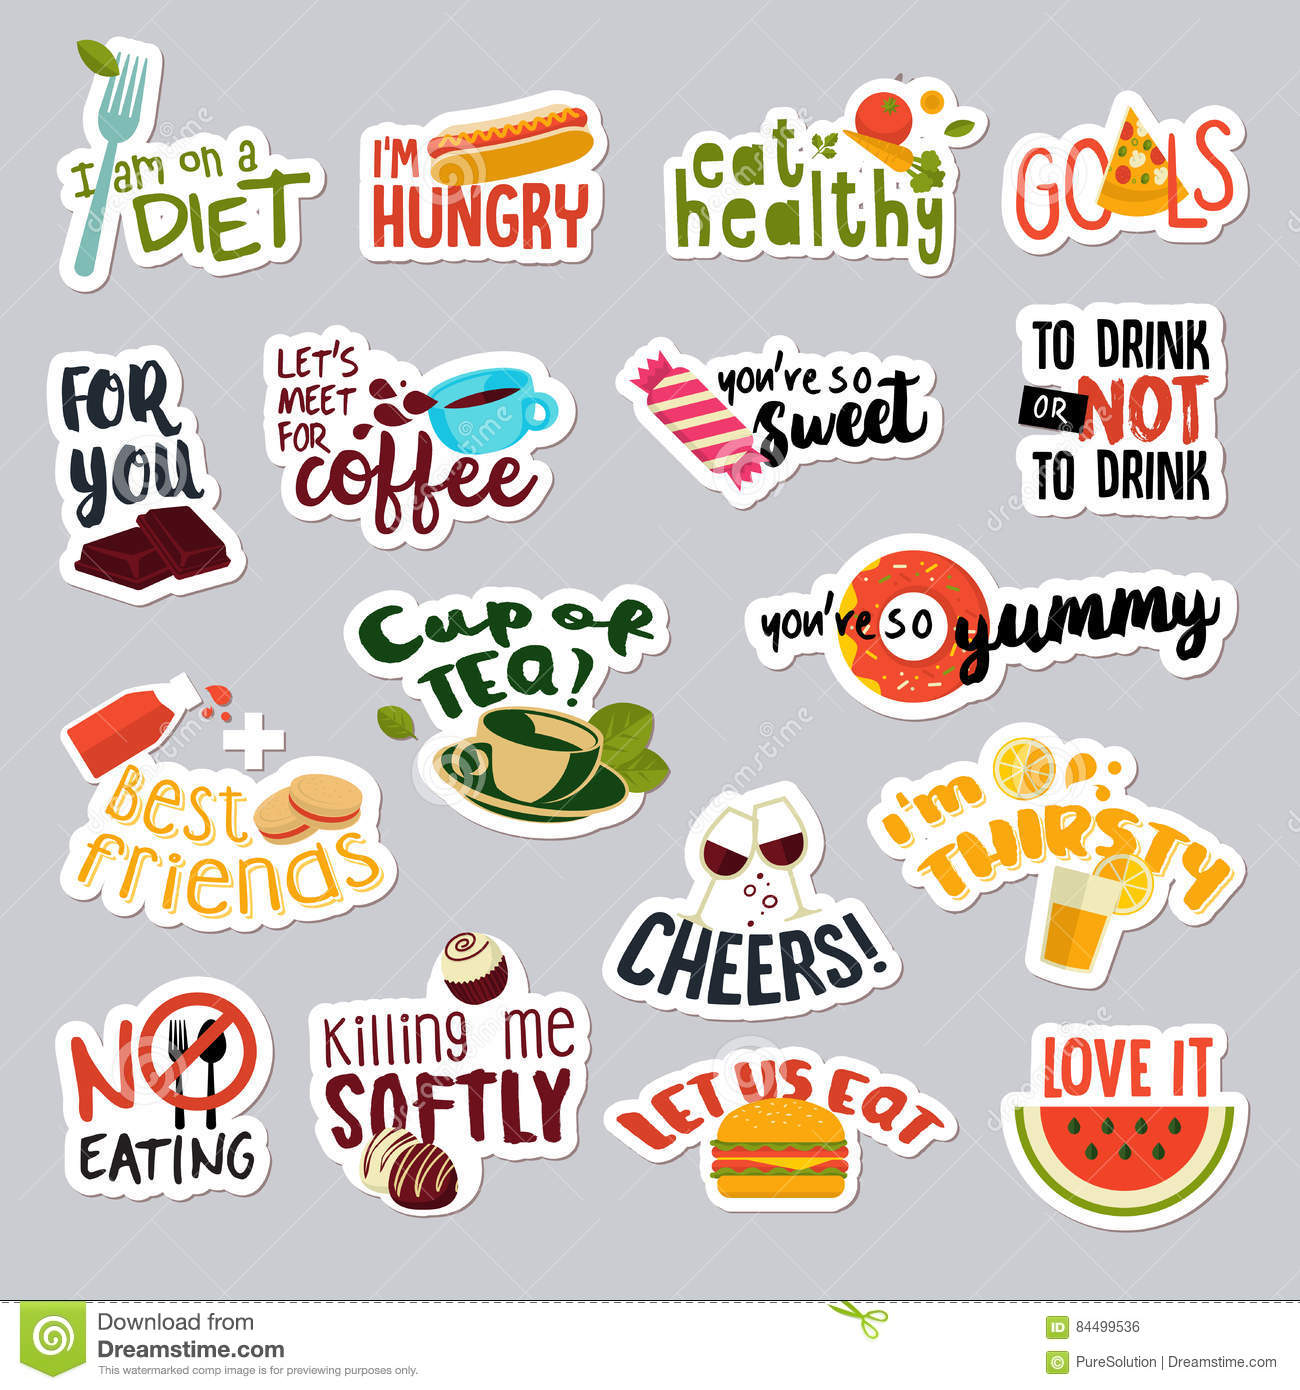 Set of funny stickers for social network food and drink stickers for mobile messages chat social media online communication networking web design